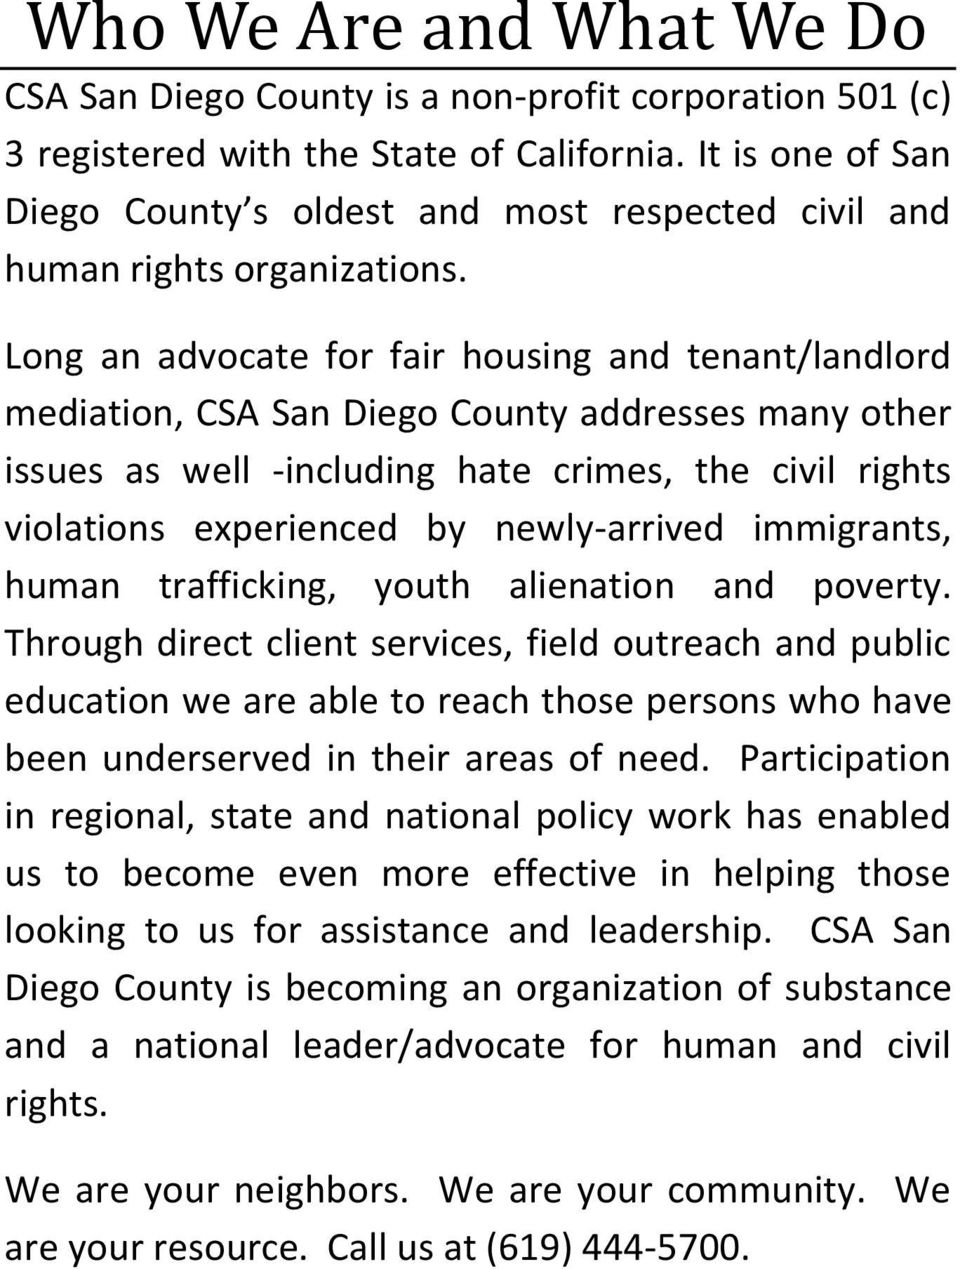 Long an advocate for fair housing and tenant/landlord mediation, CSA San Diego County addresses many other issues as well -including hate crimes, the civil rights violations experienced by